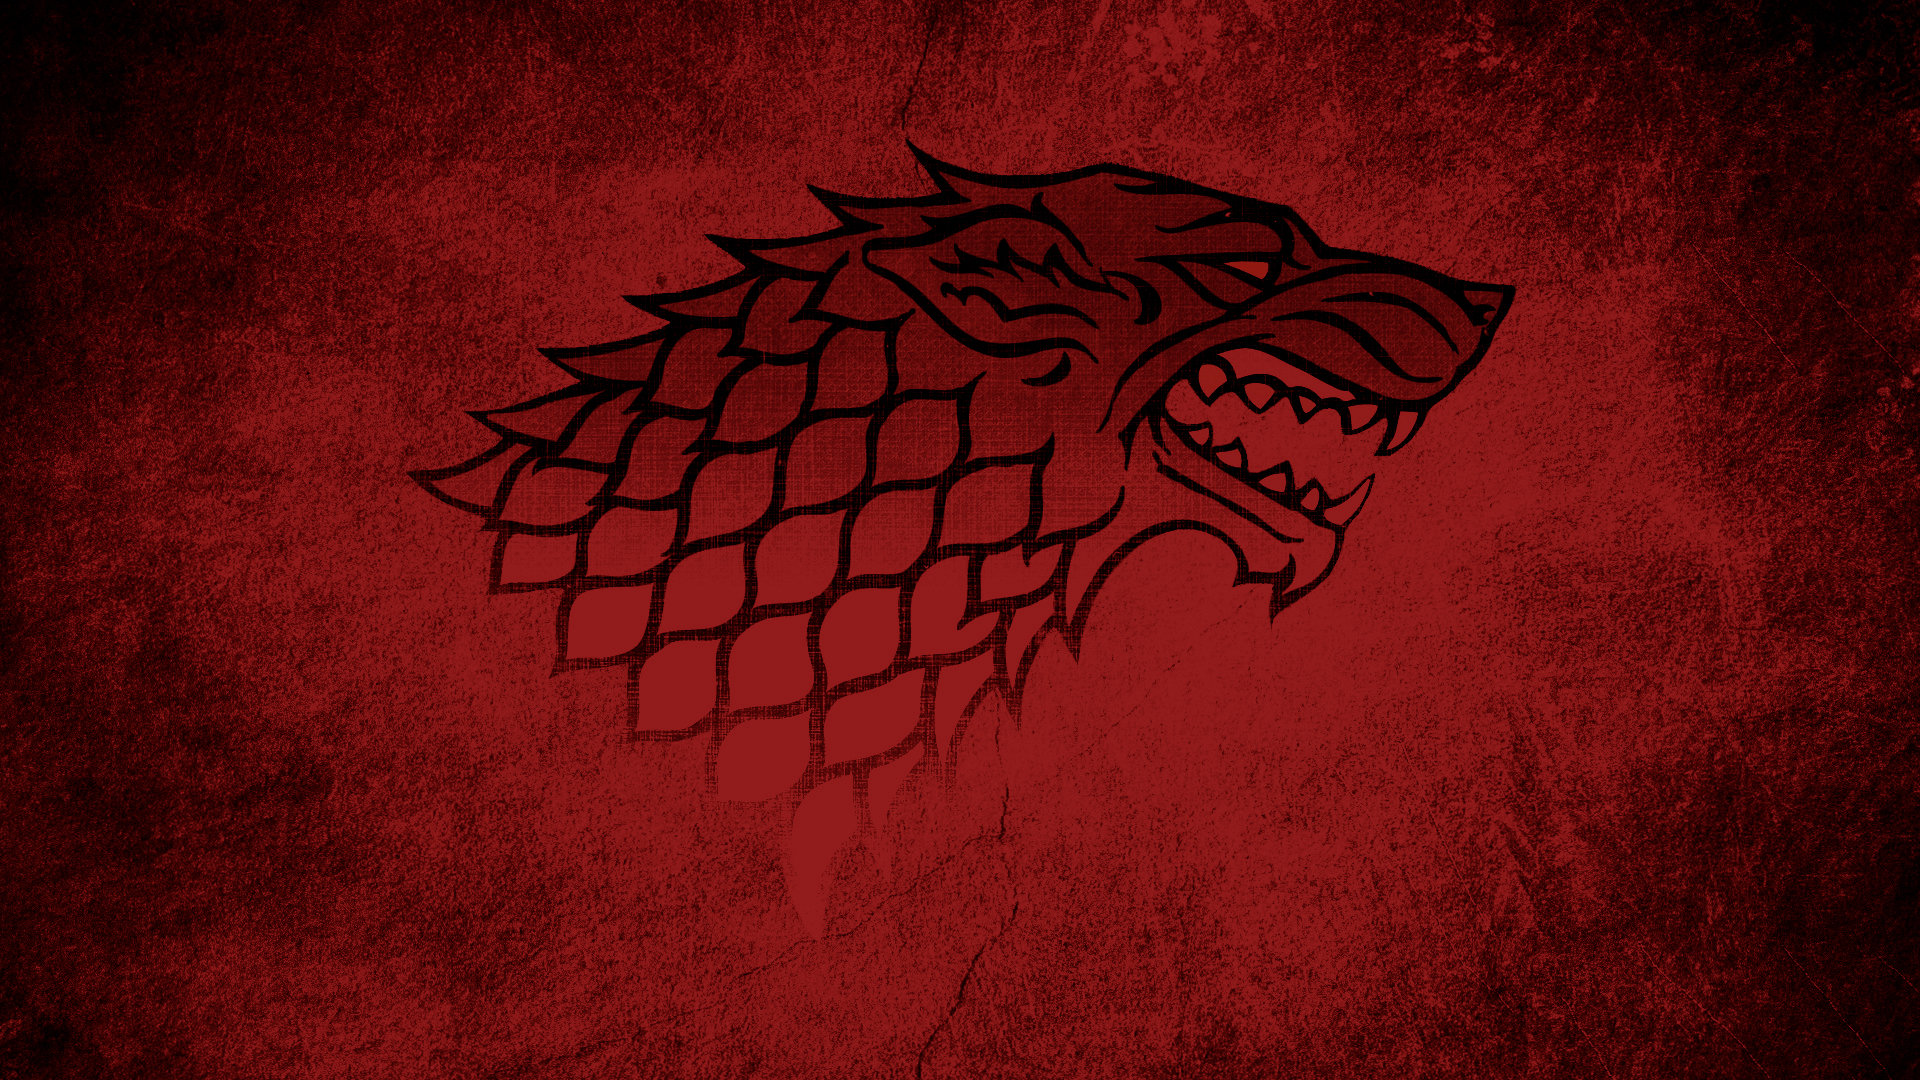 game of thrones background full hd 1080p 383339